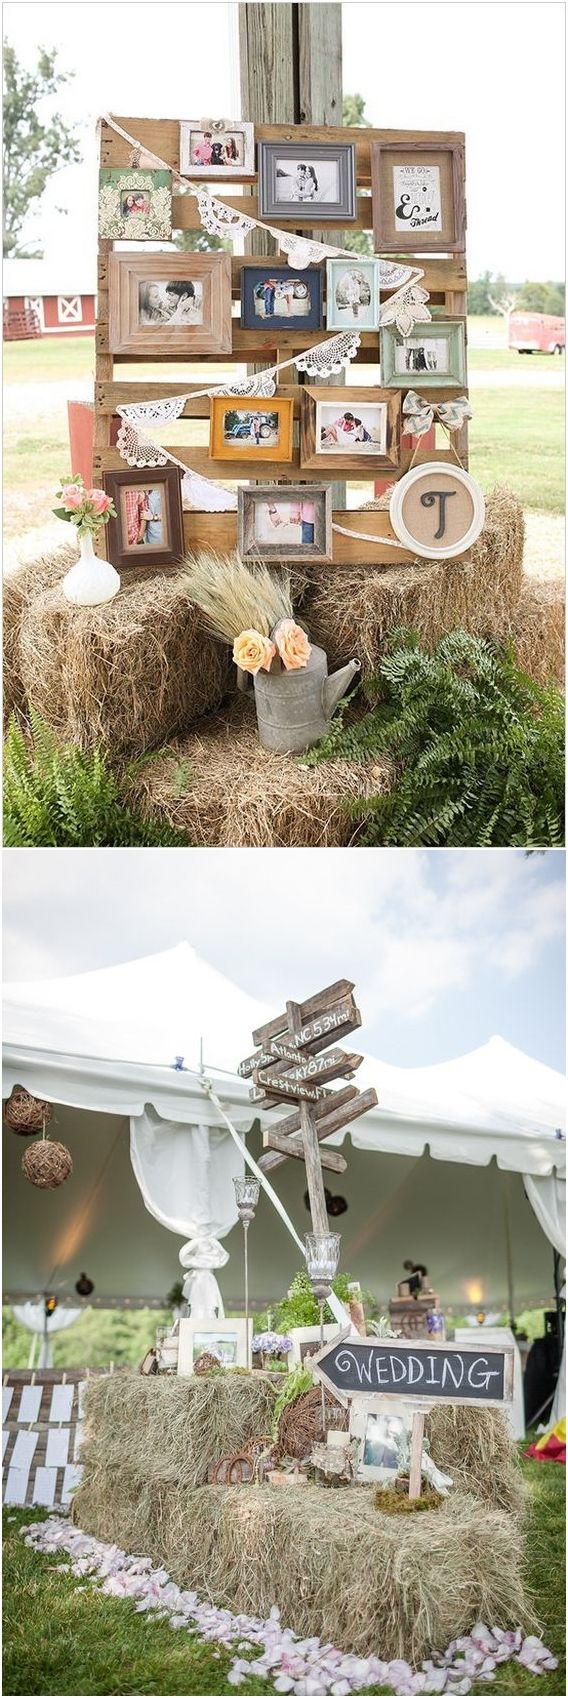 rustic country wedding decor ideas / http://www.deerpearlflowers.com/country-rustic-wedding-ideas/